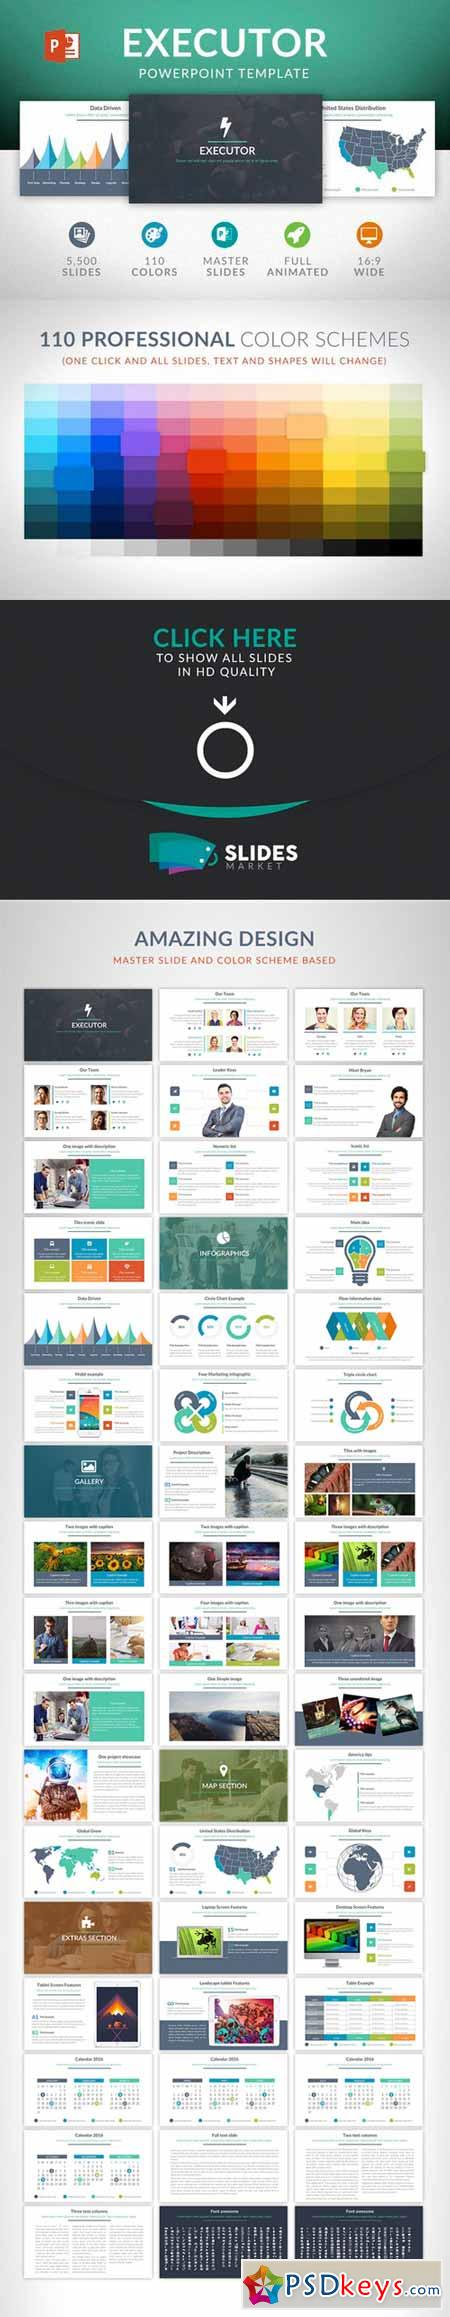 Executor powerpoint template 417475 free download for Powerpoint templates torrents